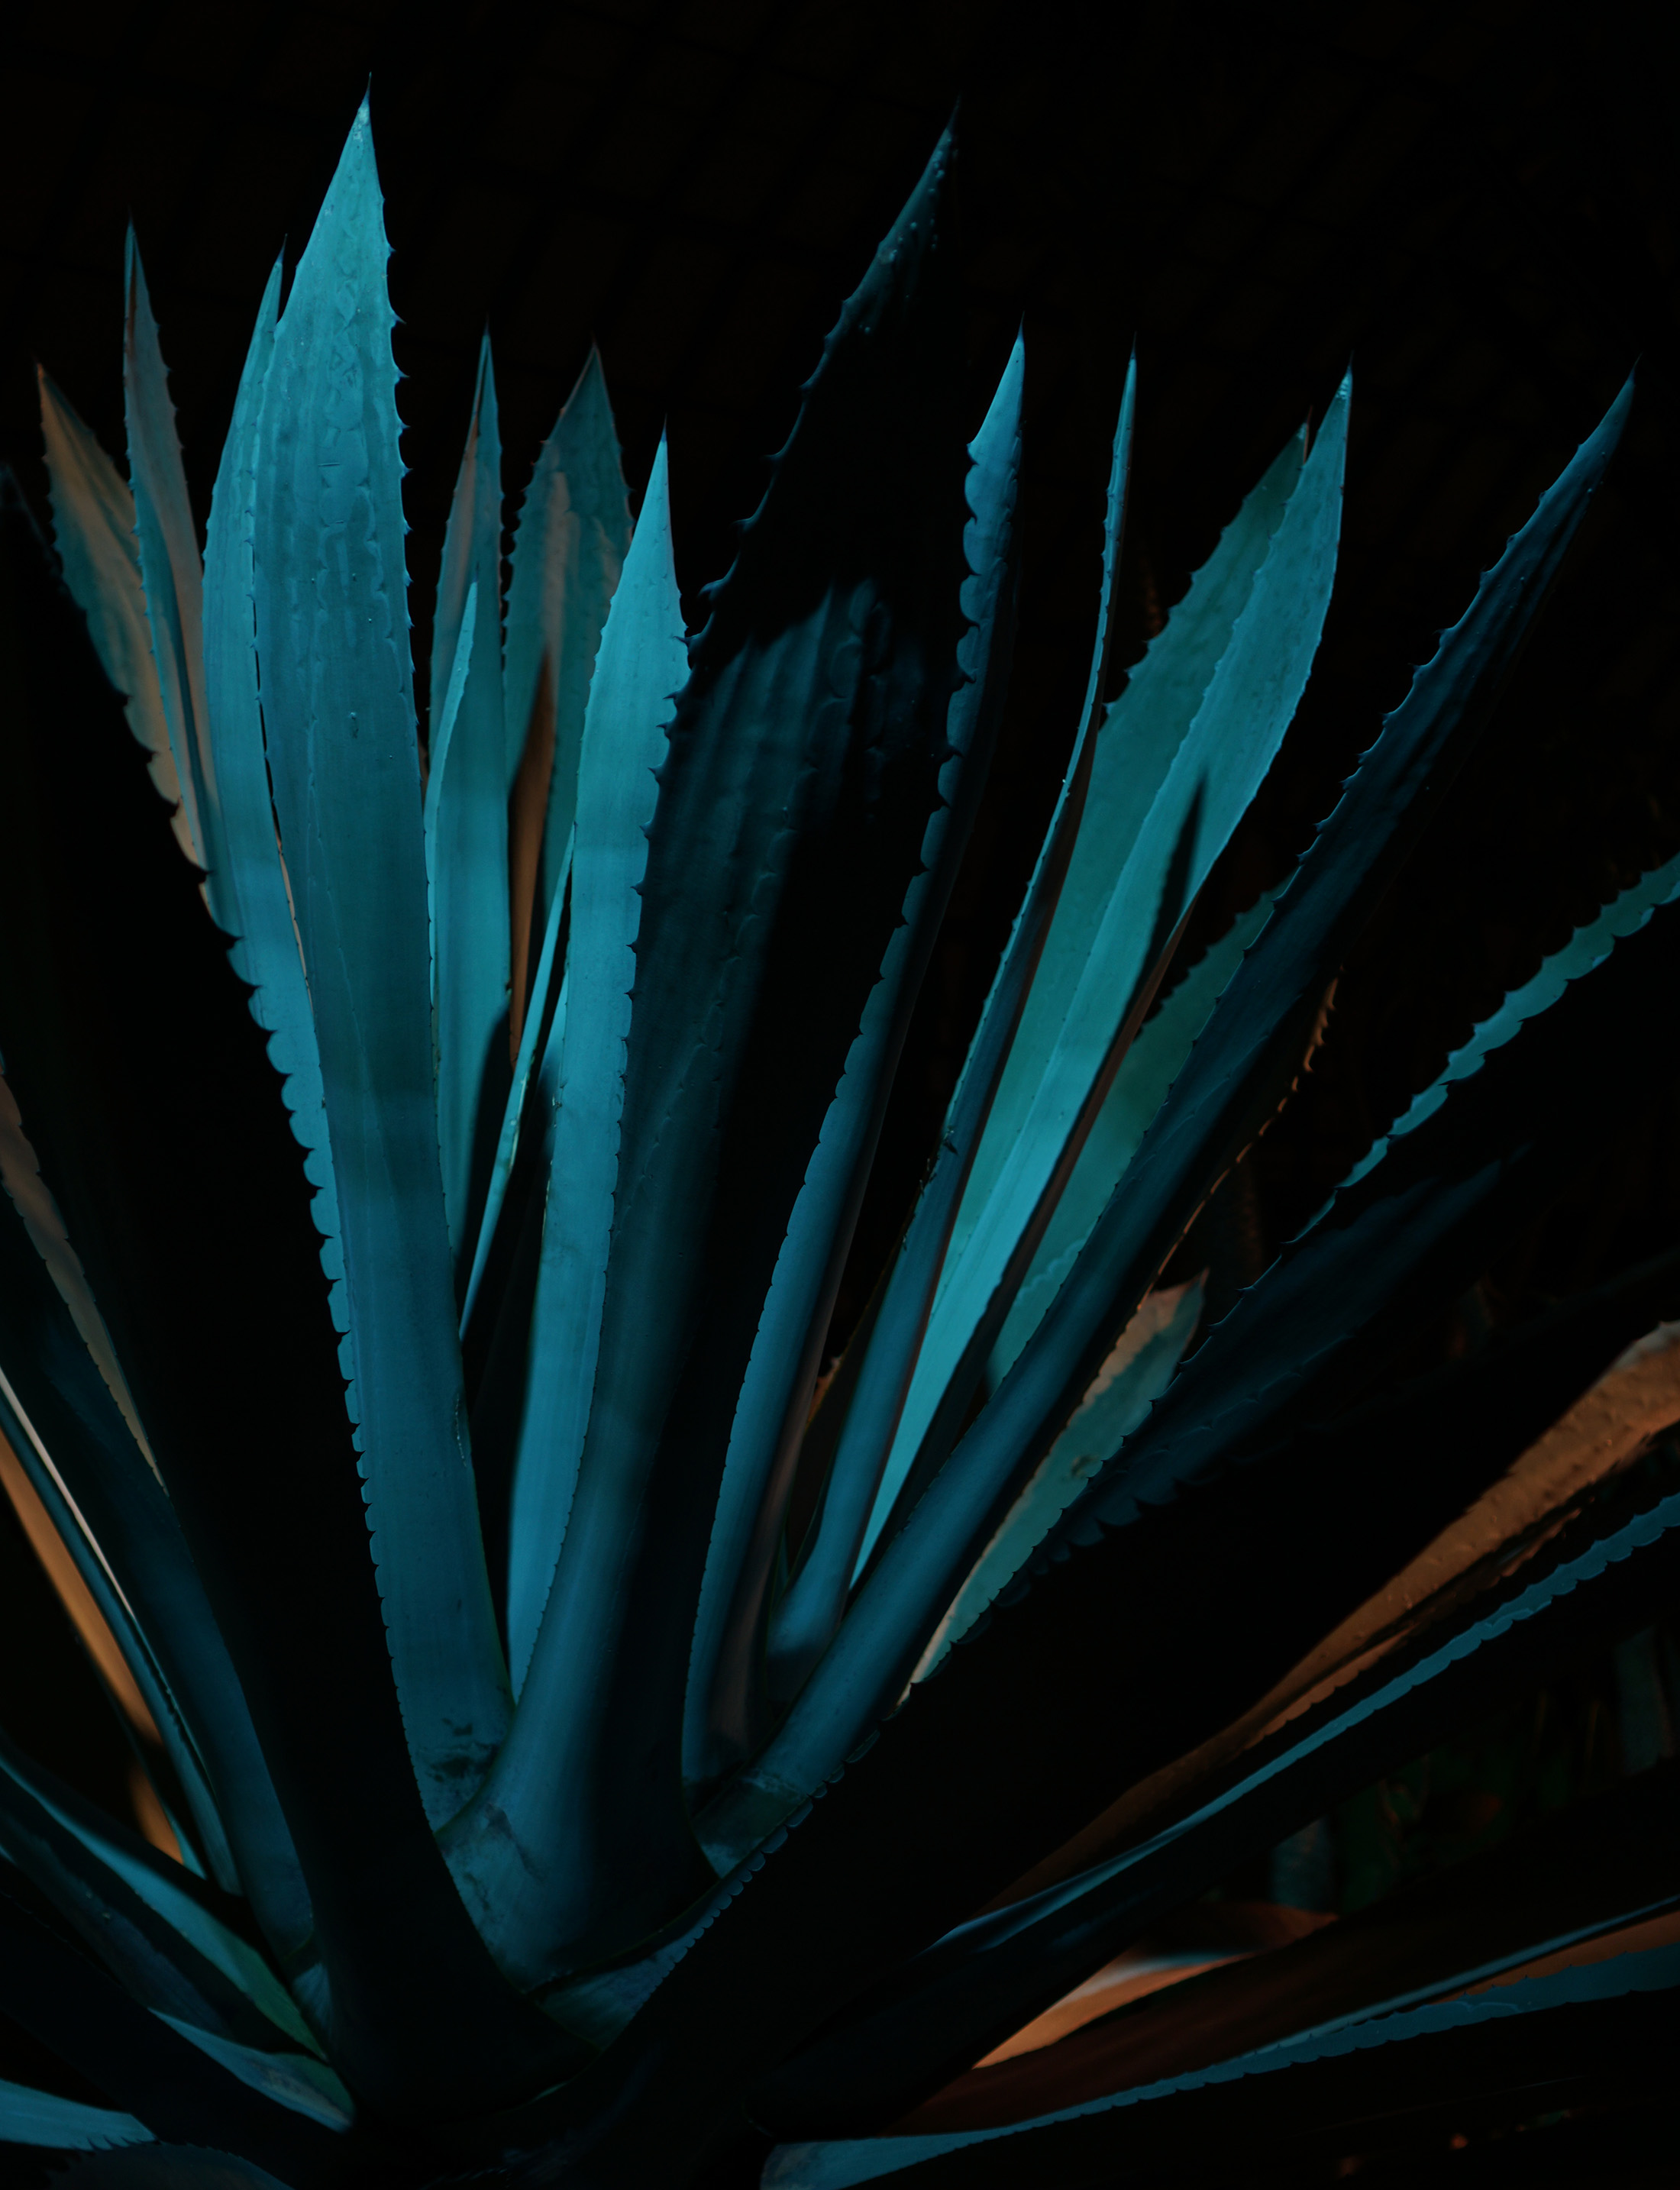 Giant agave plant lit up at night, Garfield Park Conservatory, Chicago IL / Darker than Green